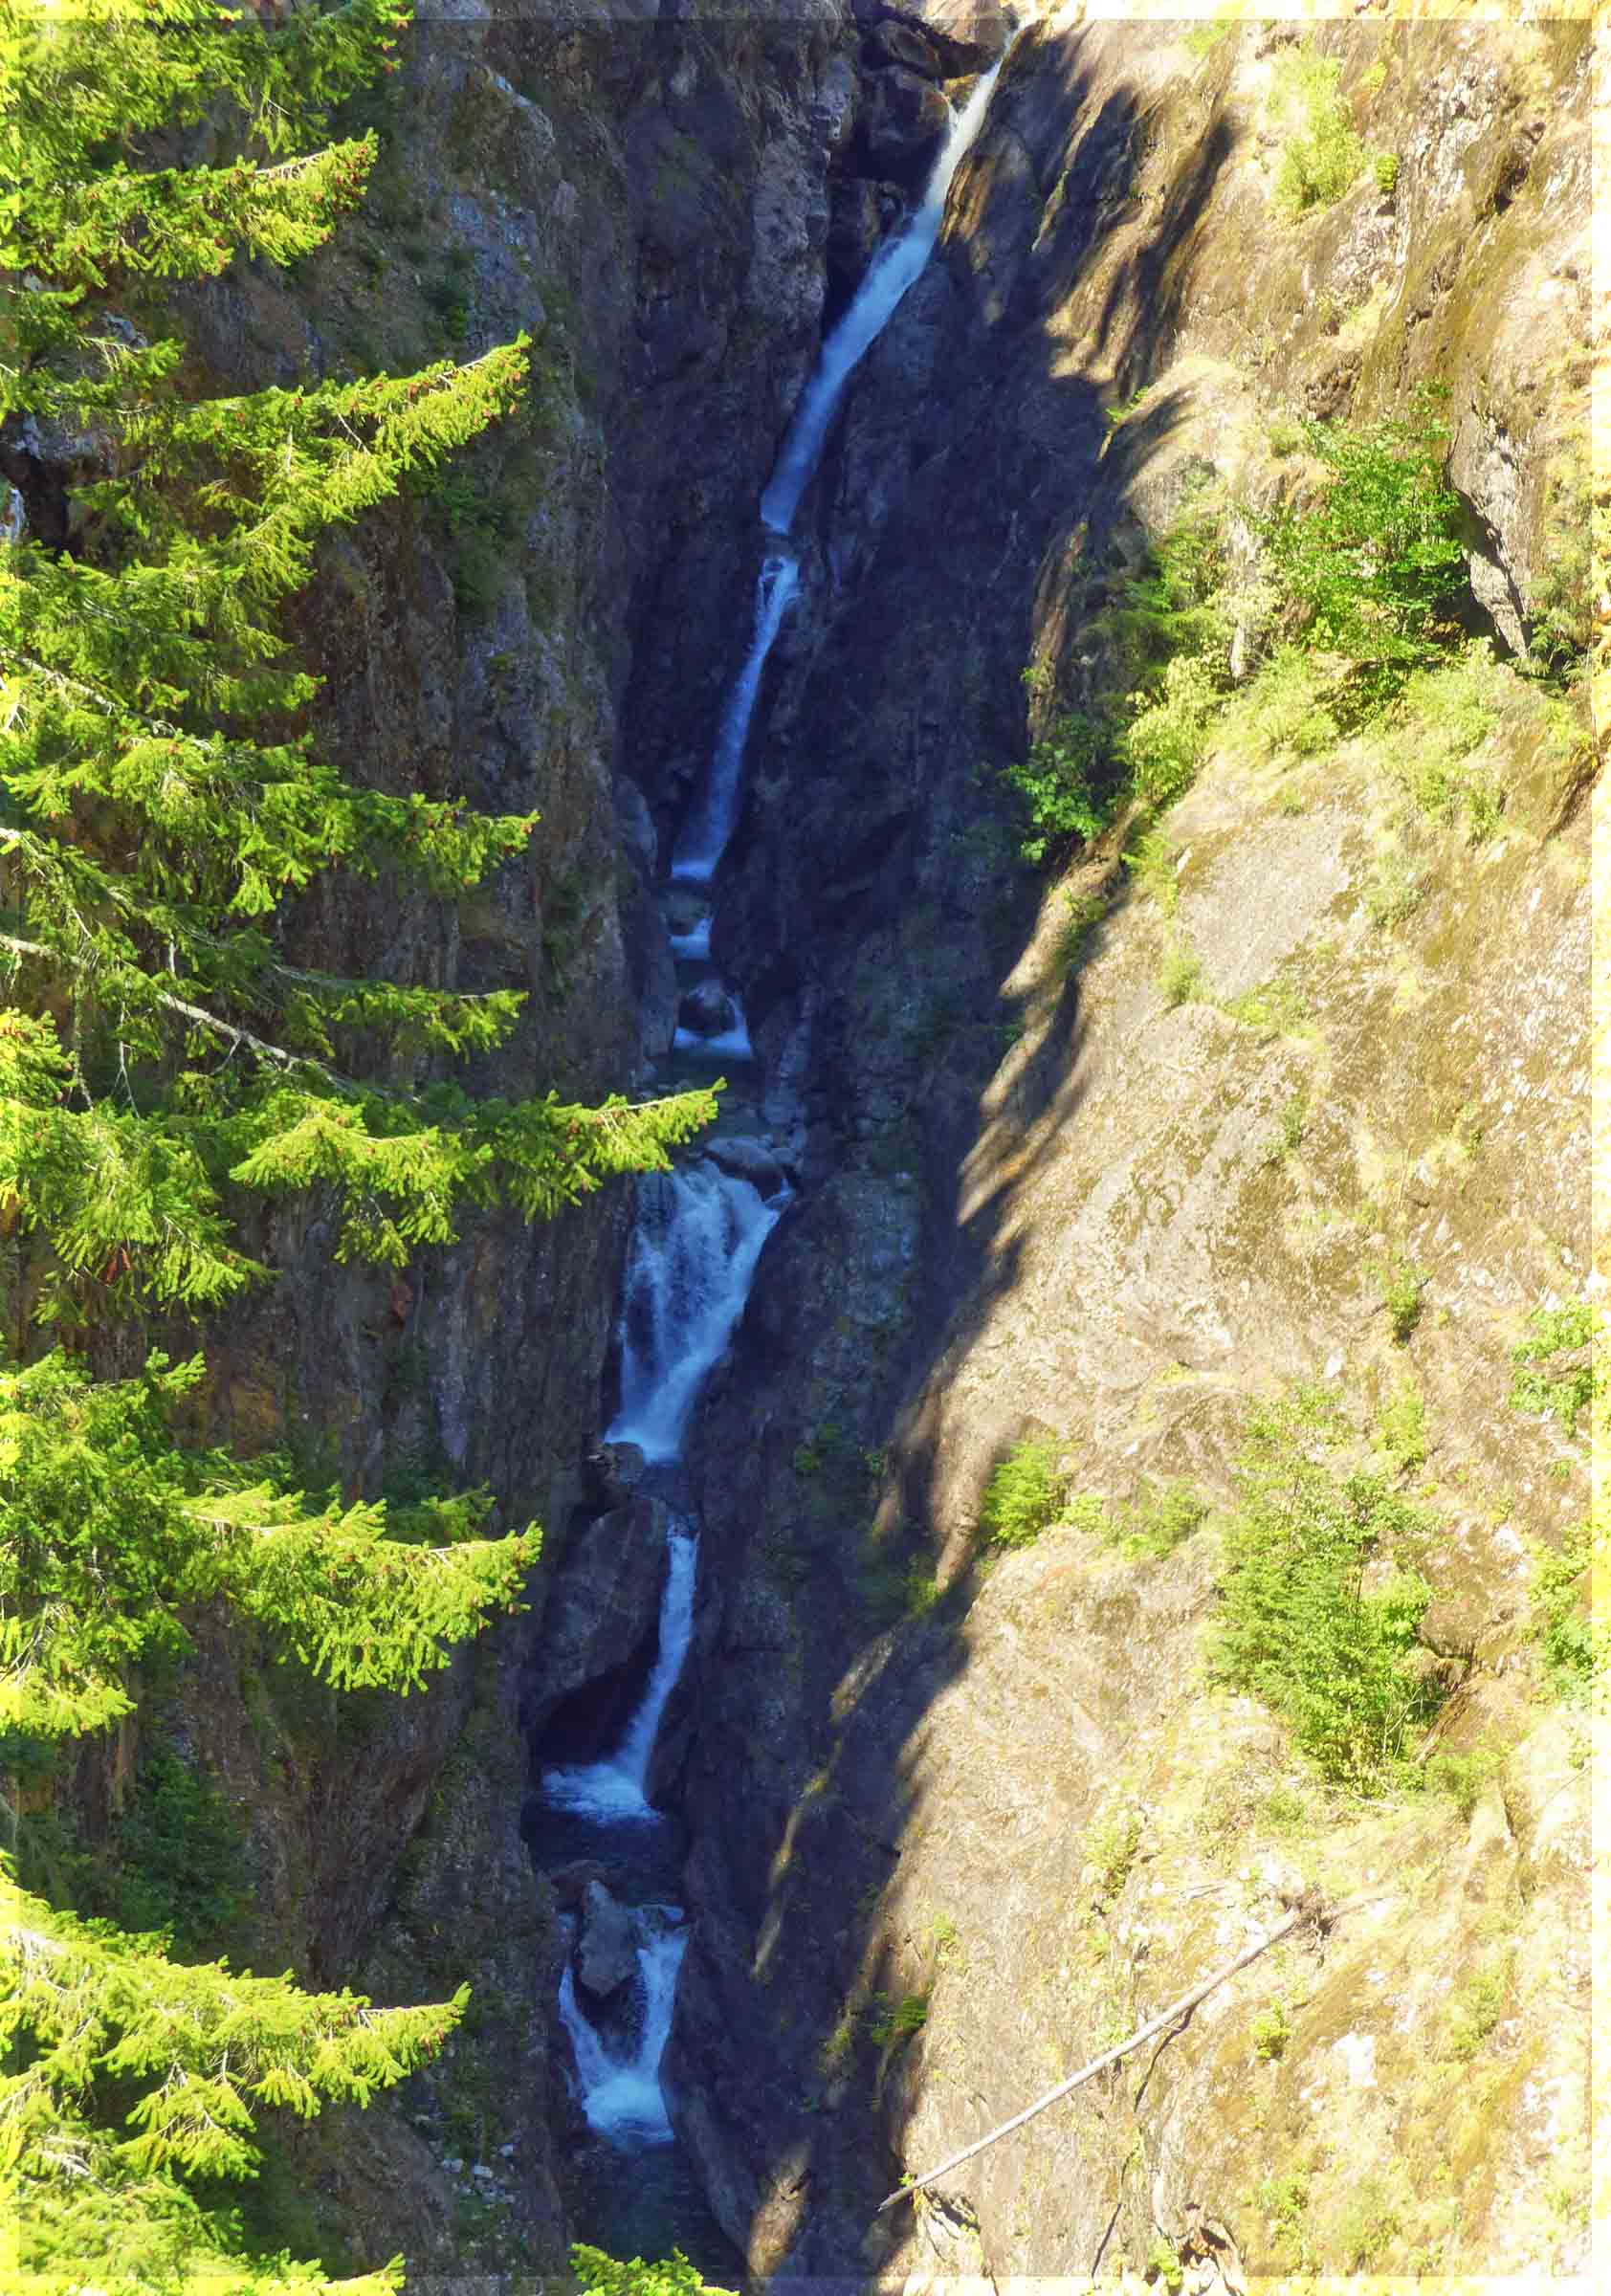 Narrow chasm with waterfall